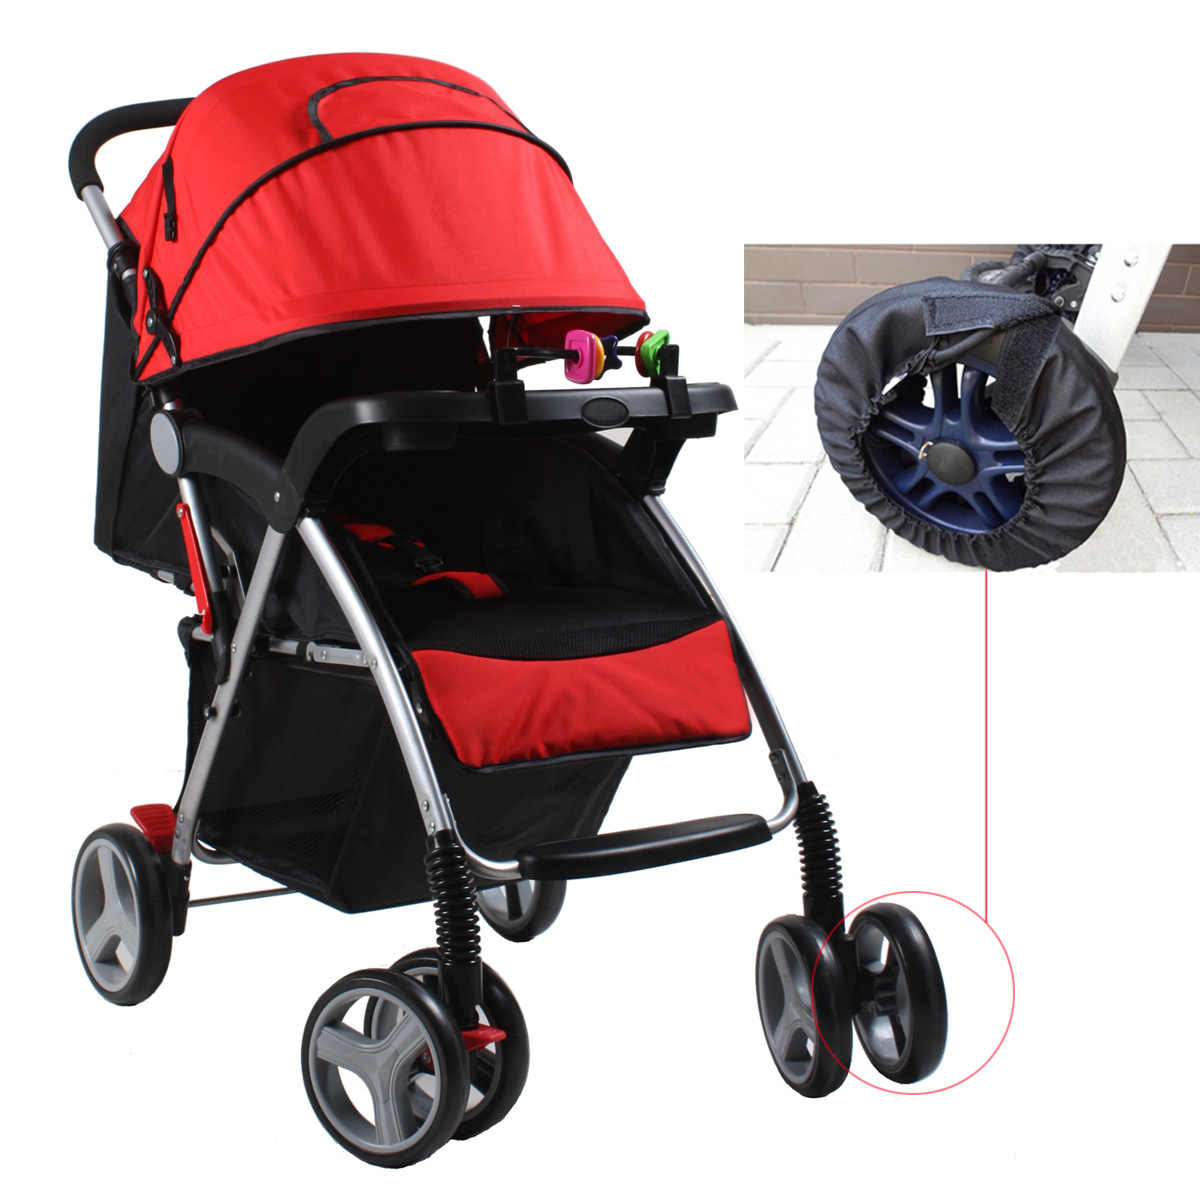 Egg Pram Replacement Wheels 1pcs Baby Stroller Accessories Wheels Covers For Stroller